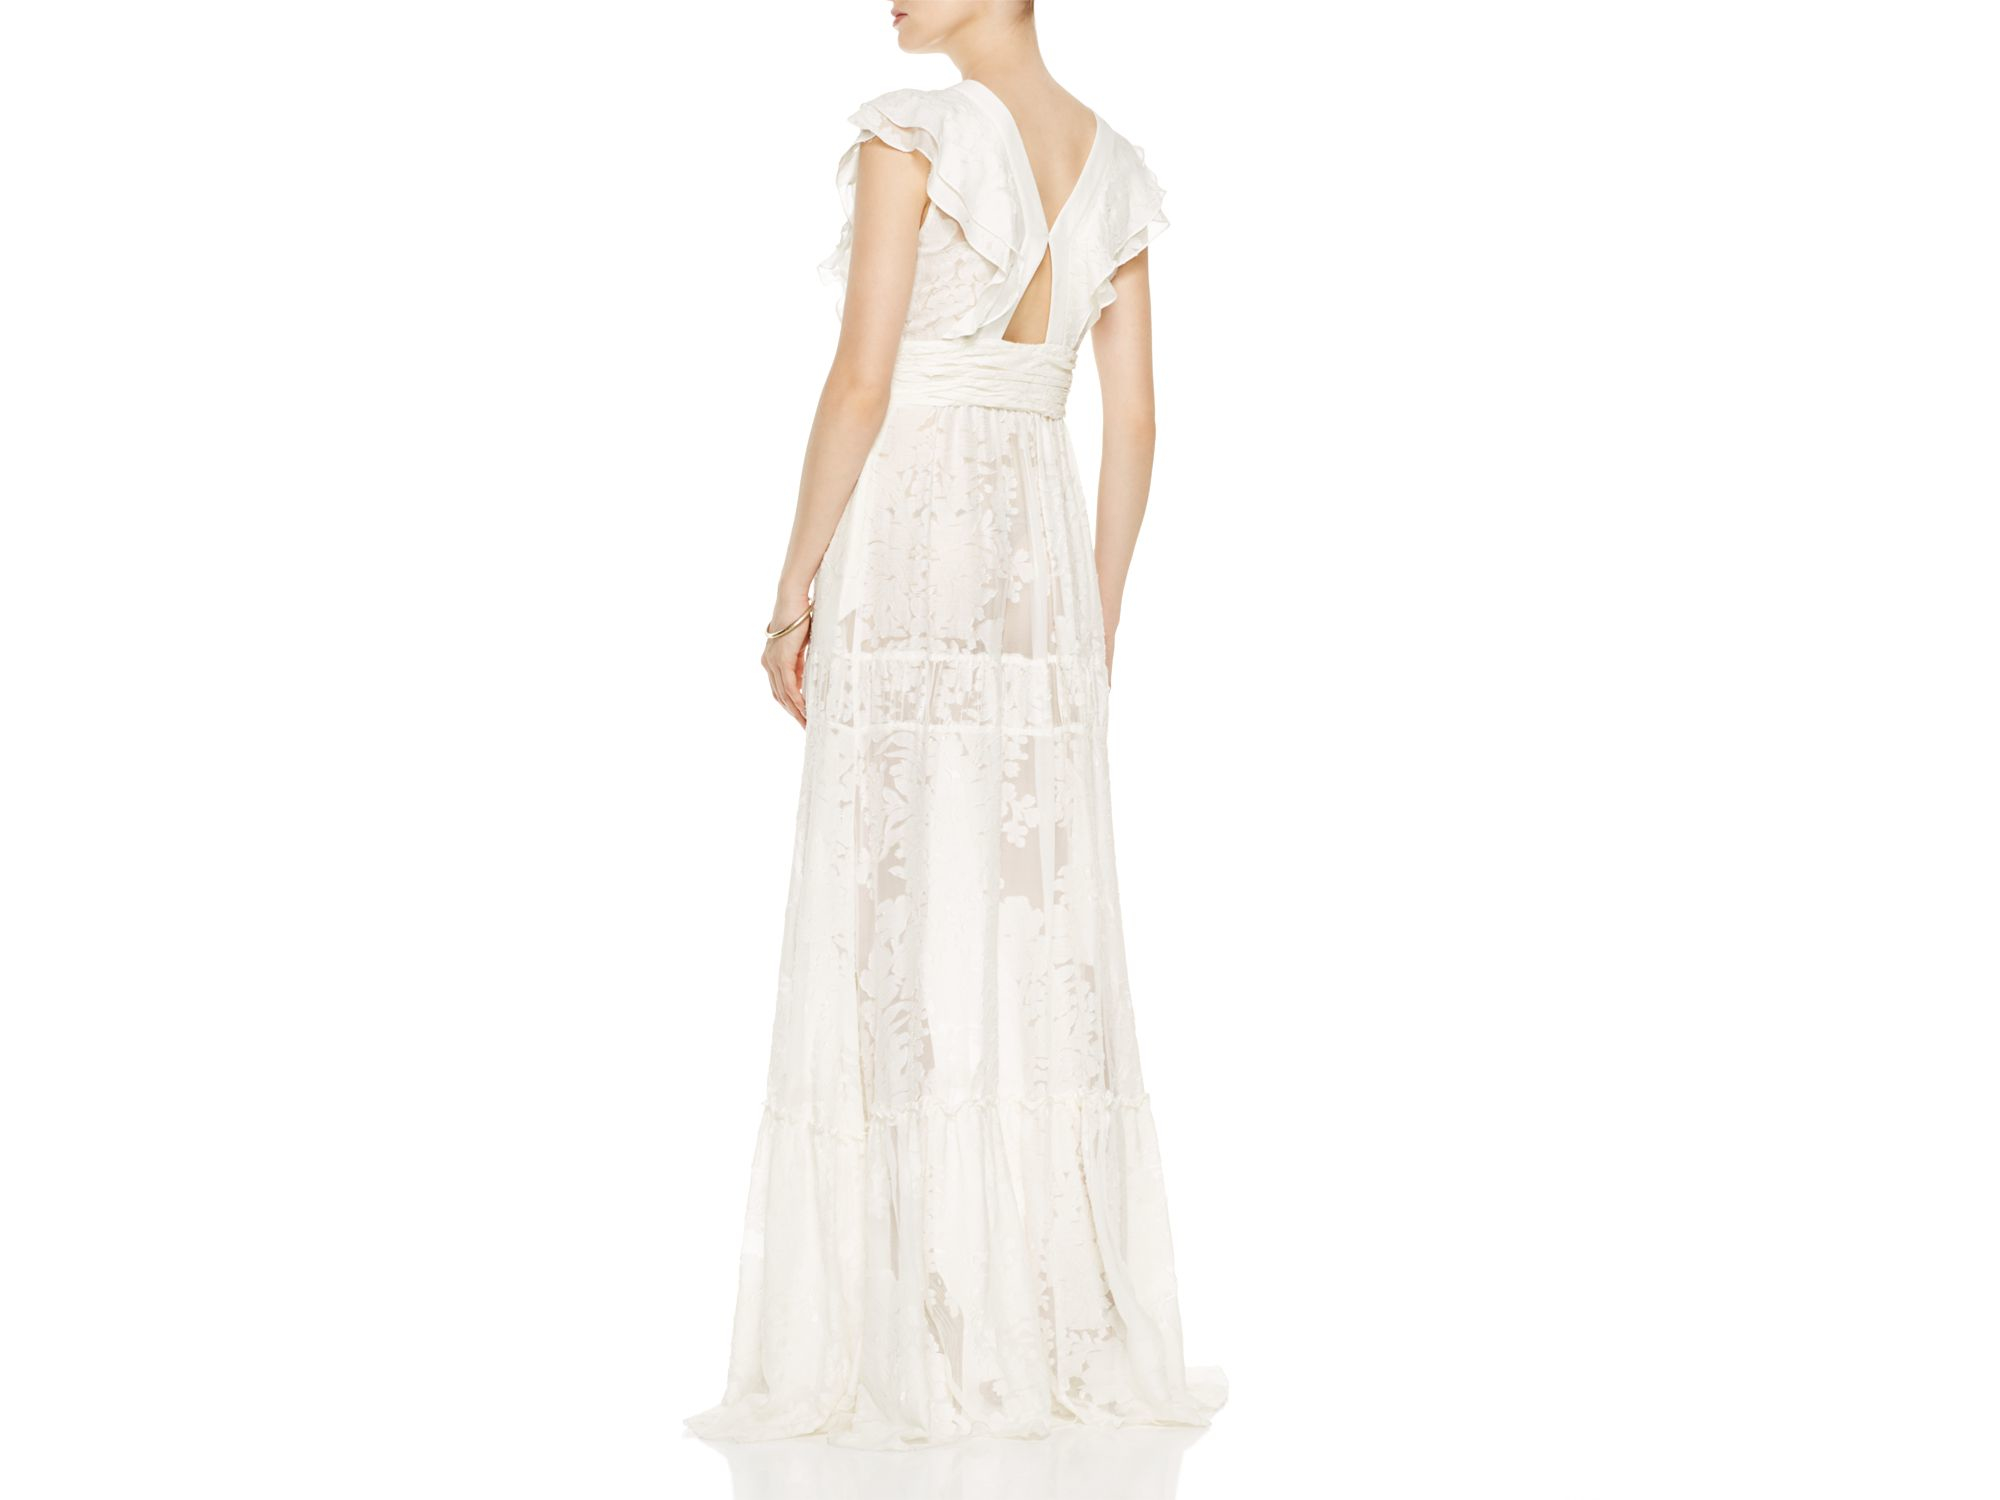 b13fdc22 Rachel Zoe Rory Floral Fil Coupe Gown in White - Lyst